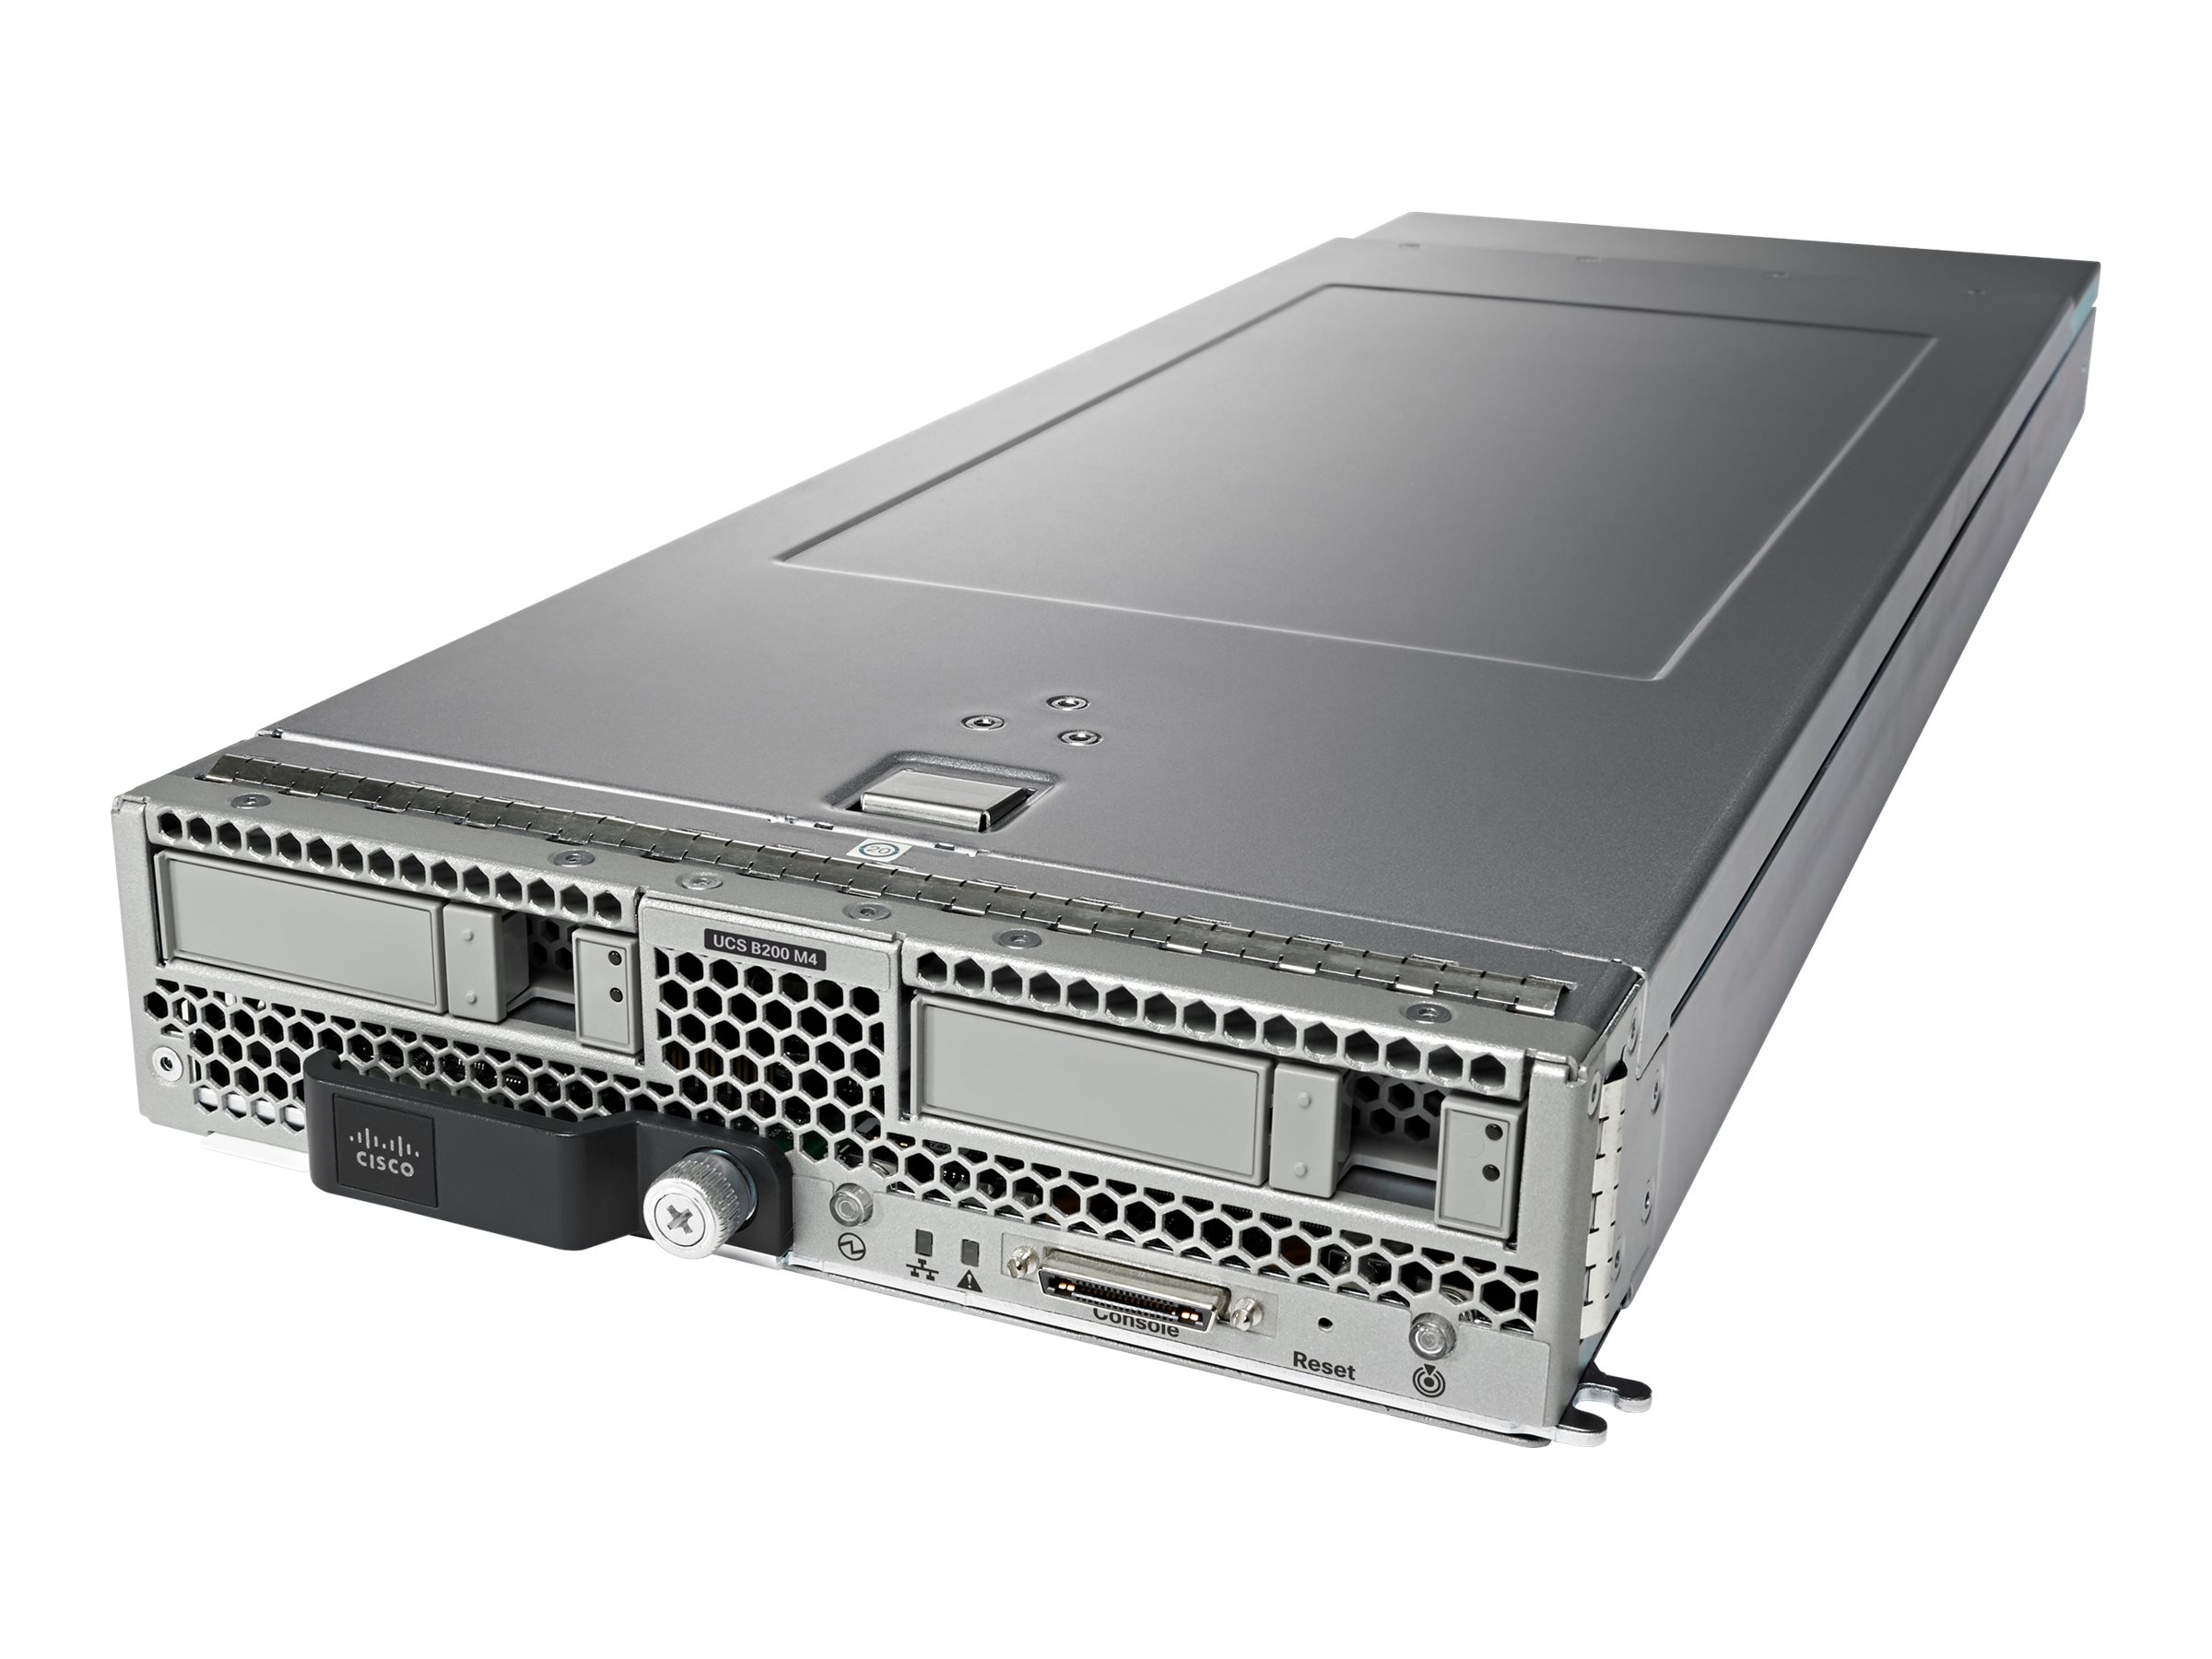 Cisco UCS B200 M4 Blade STD2 NOT SOLD STANDALONE